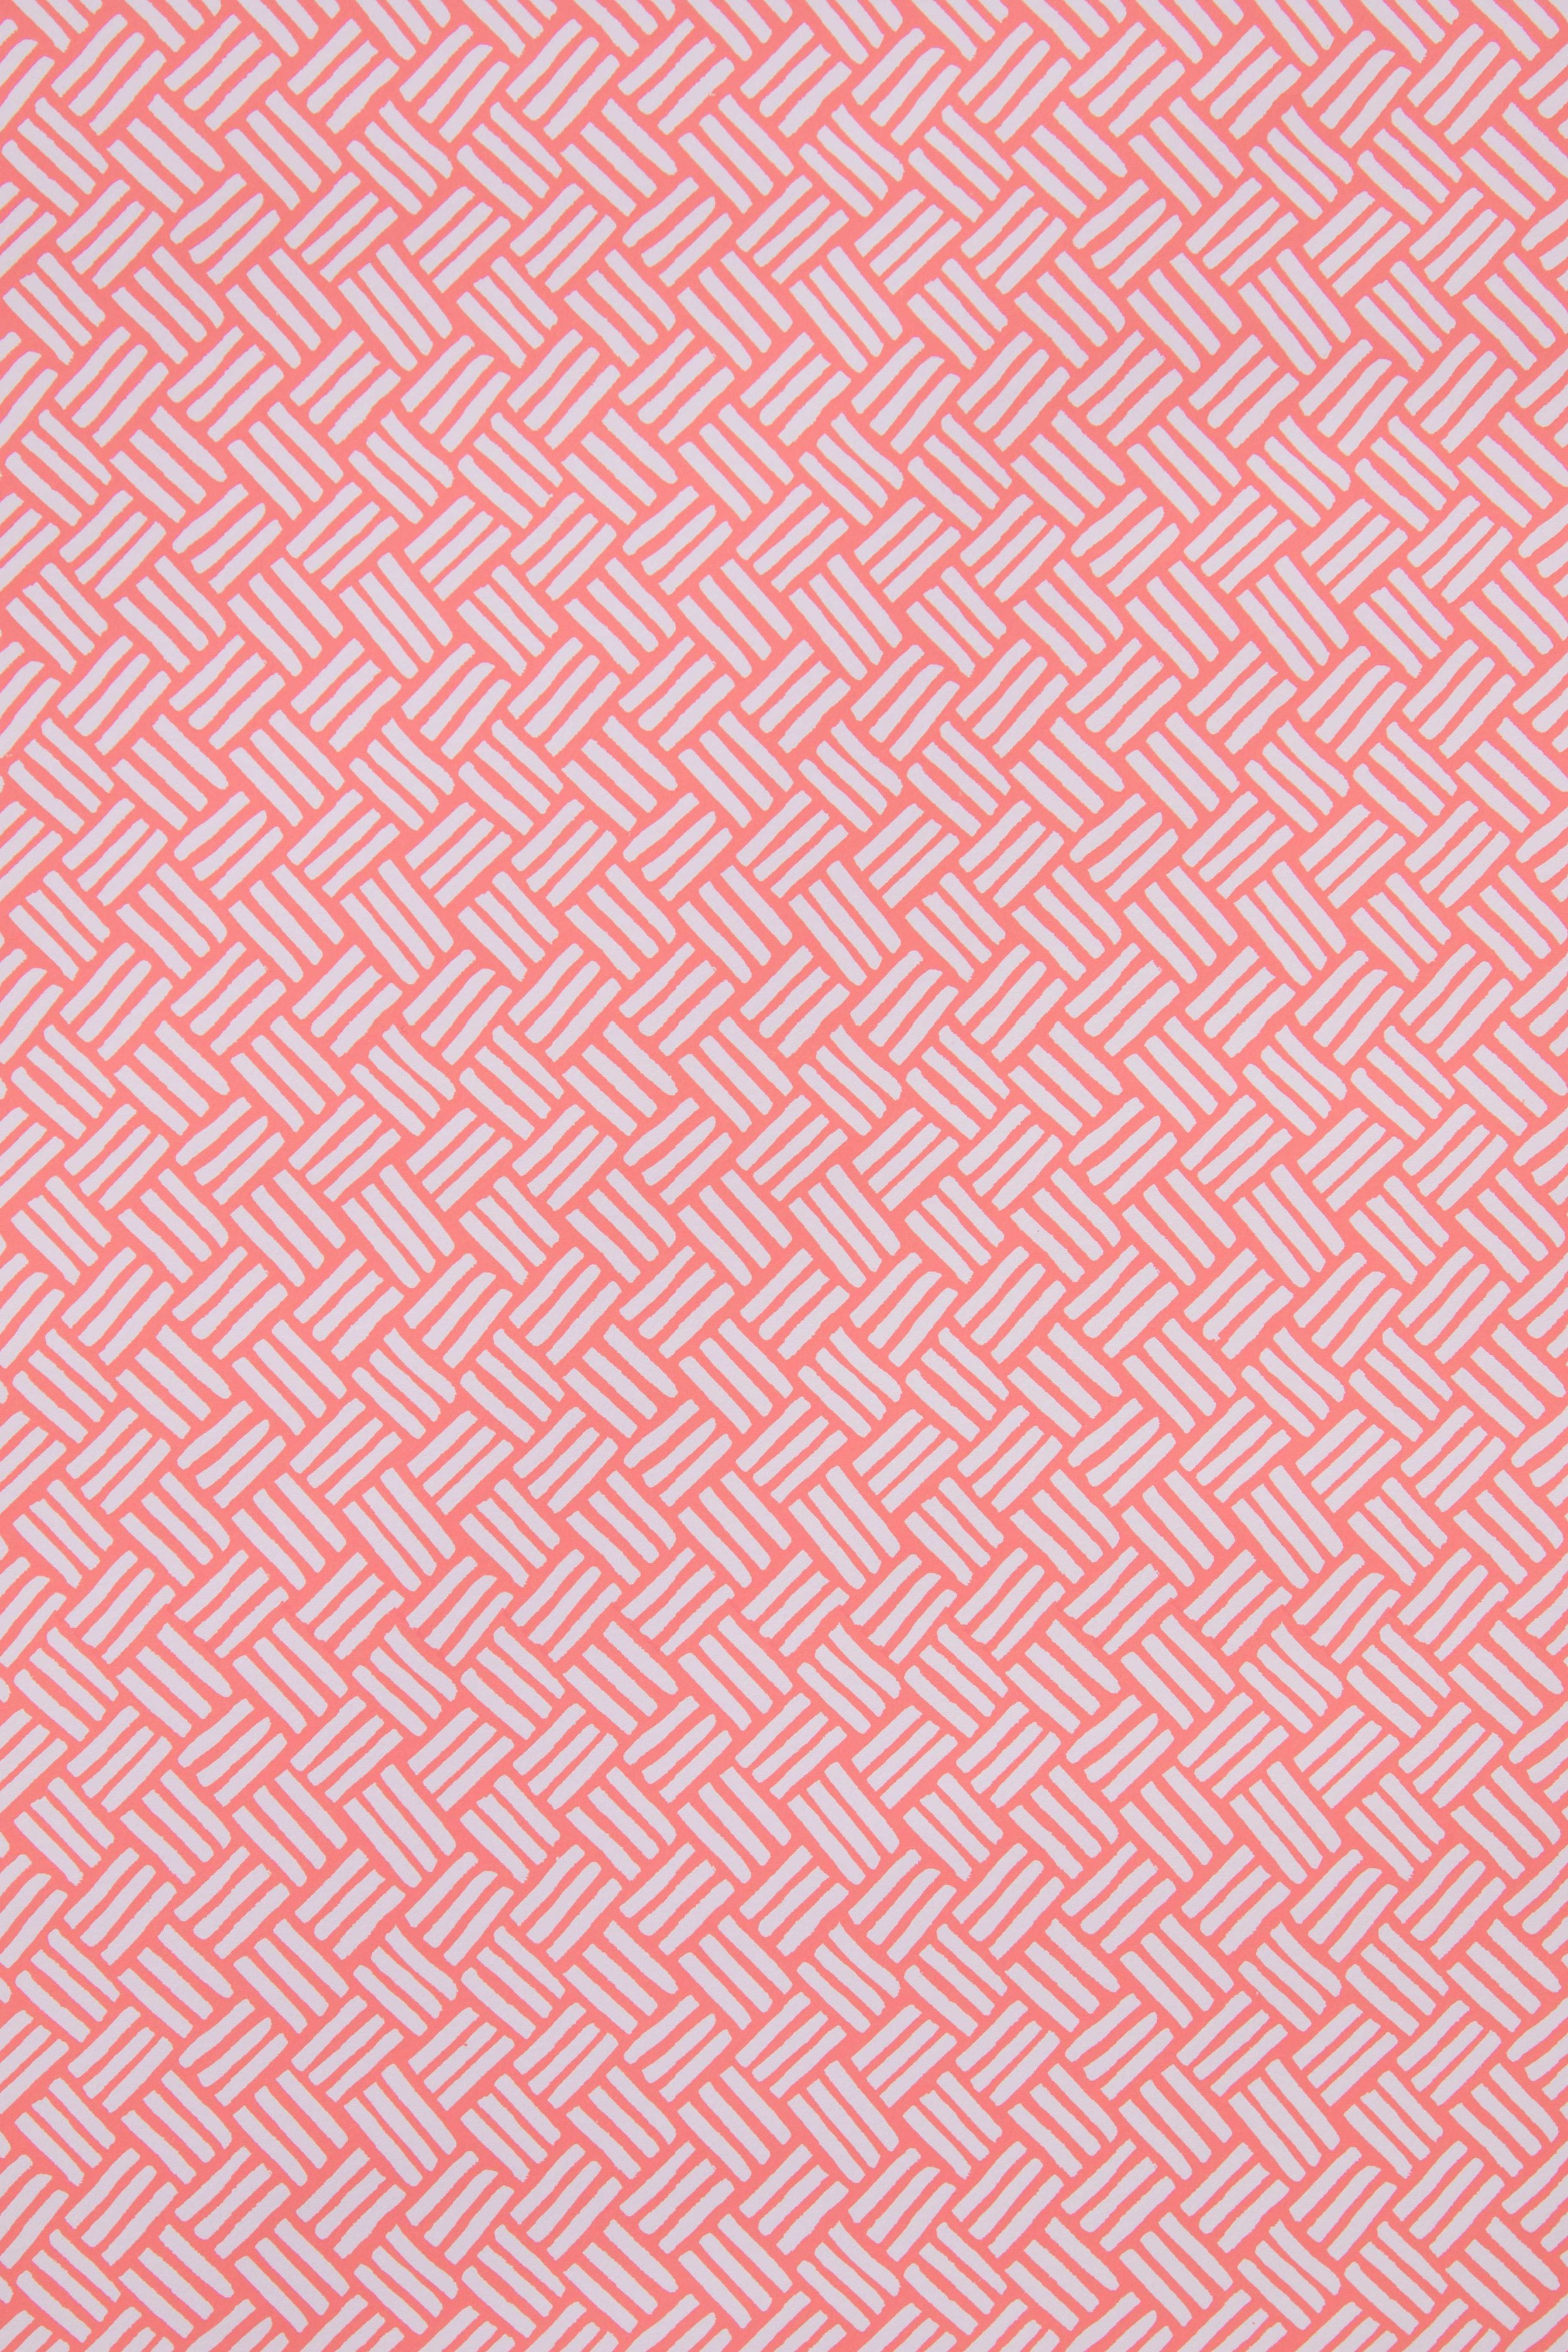 Coral Pink 05